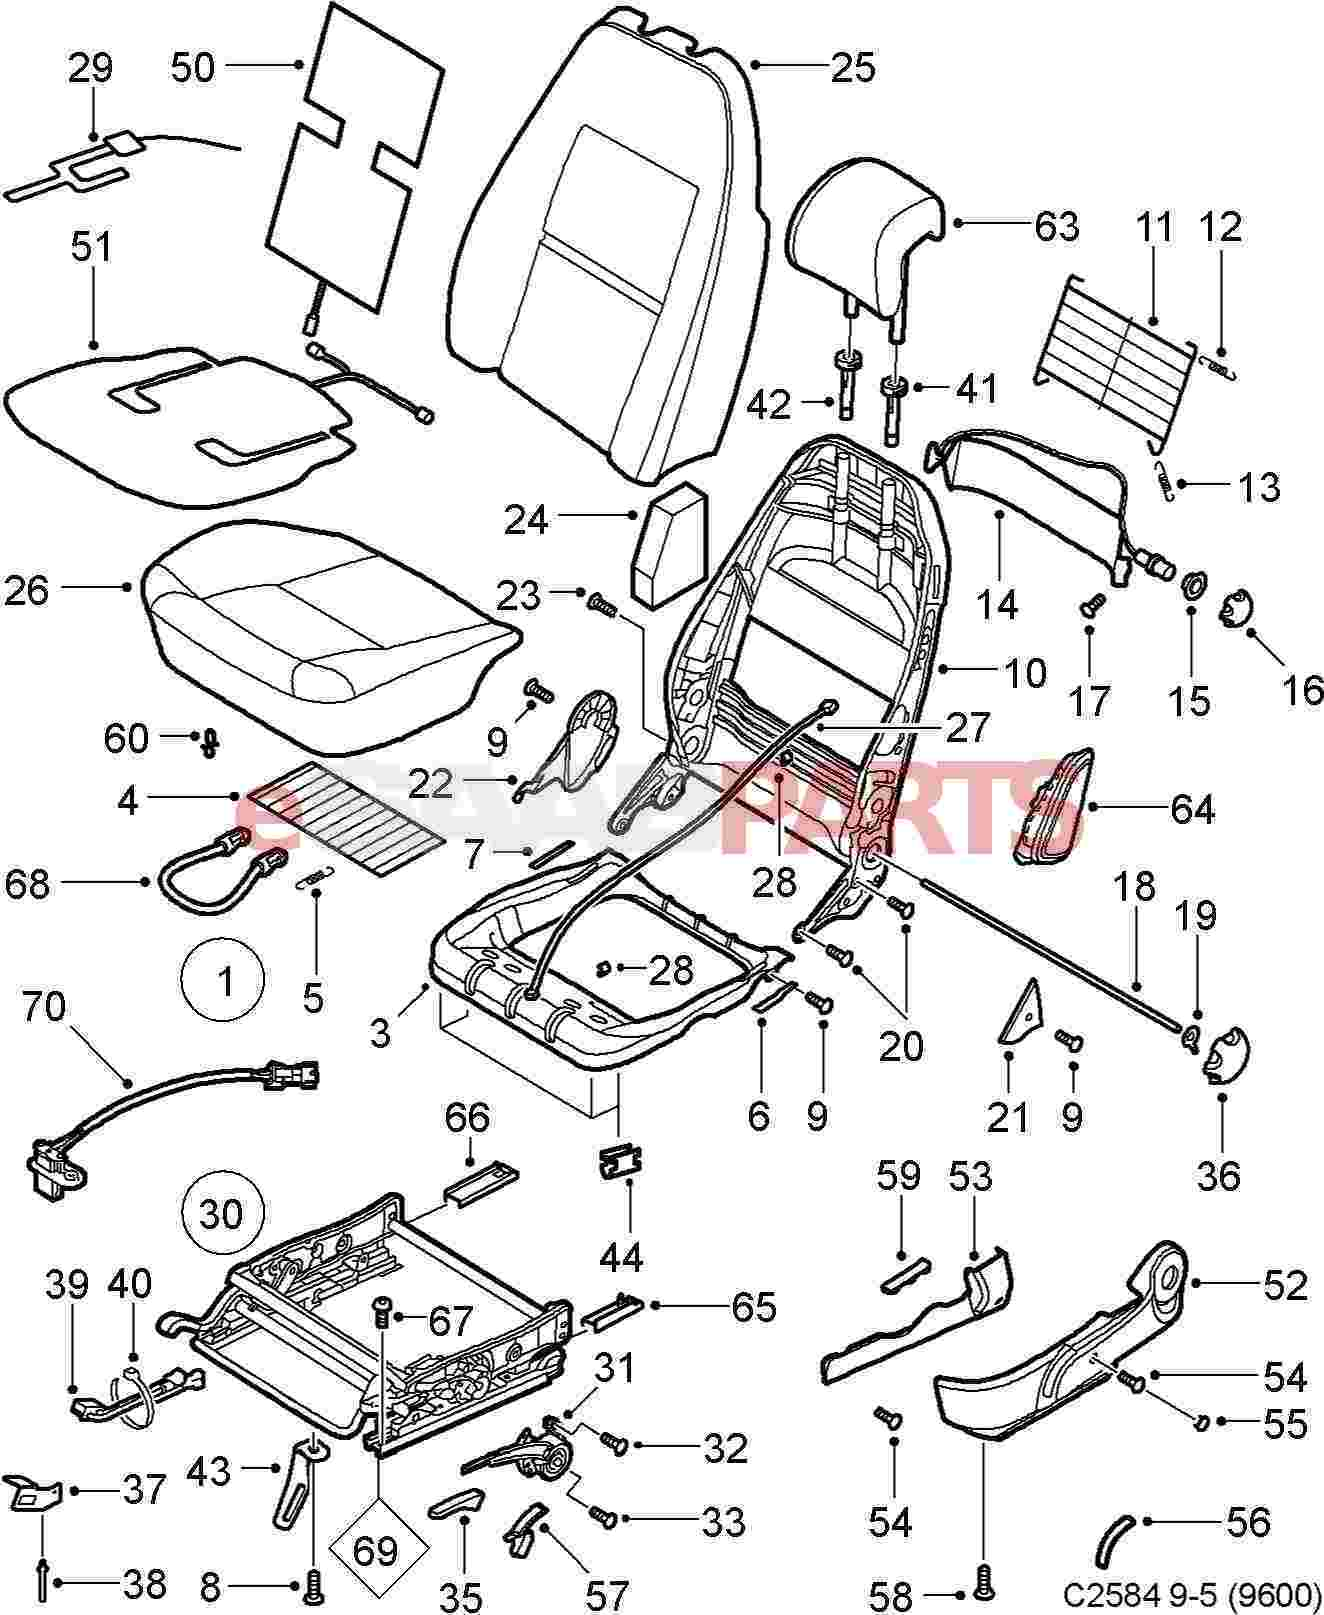 Saab 95 Heated Seat Wiring Diagram Schematics Diagrams For Seats Esaabparts Com 9 5 9600 U003e Car Body Internal Parts Rh Buick Gm Power